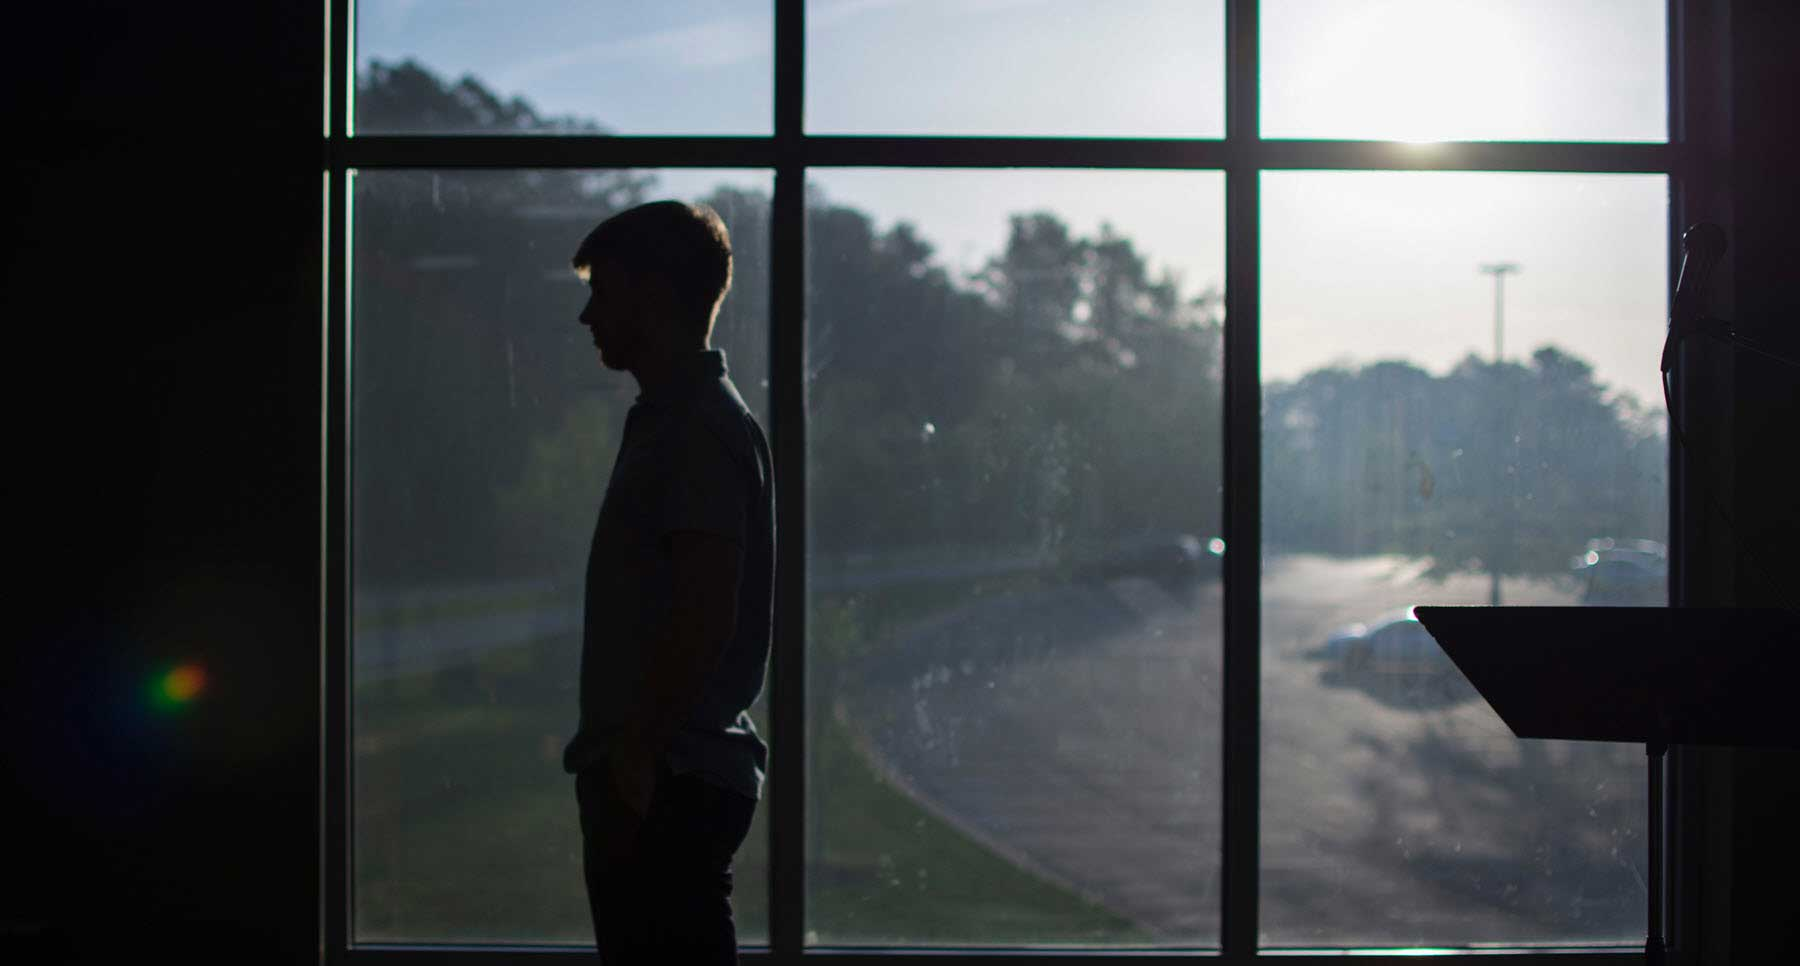 silhouette of a guy-standing-by-a-window-suicide-survivor-learned-lessons-thehopeline-resources